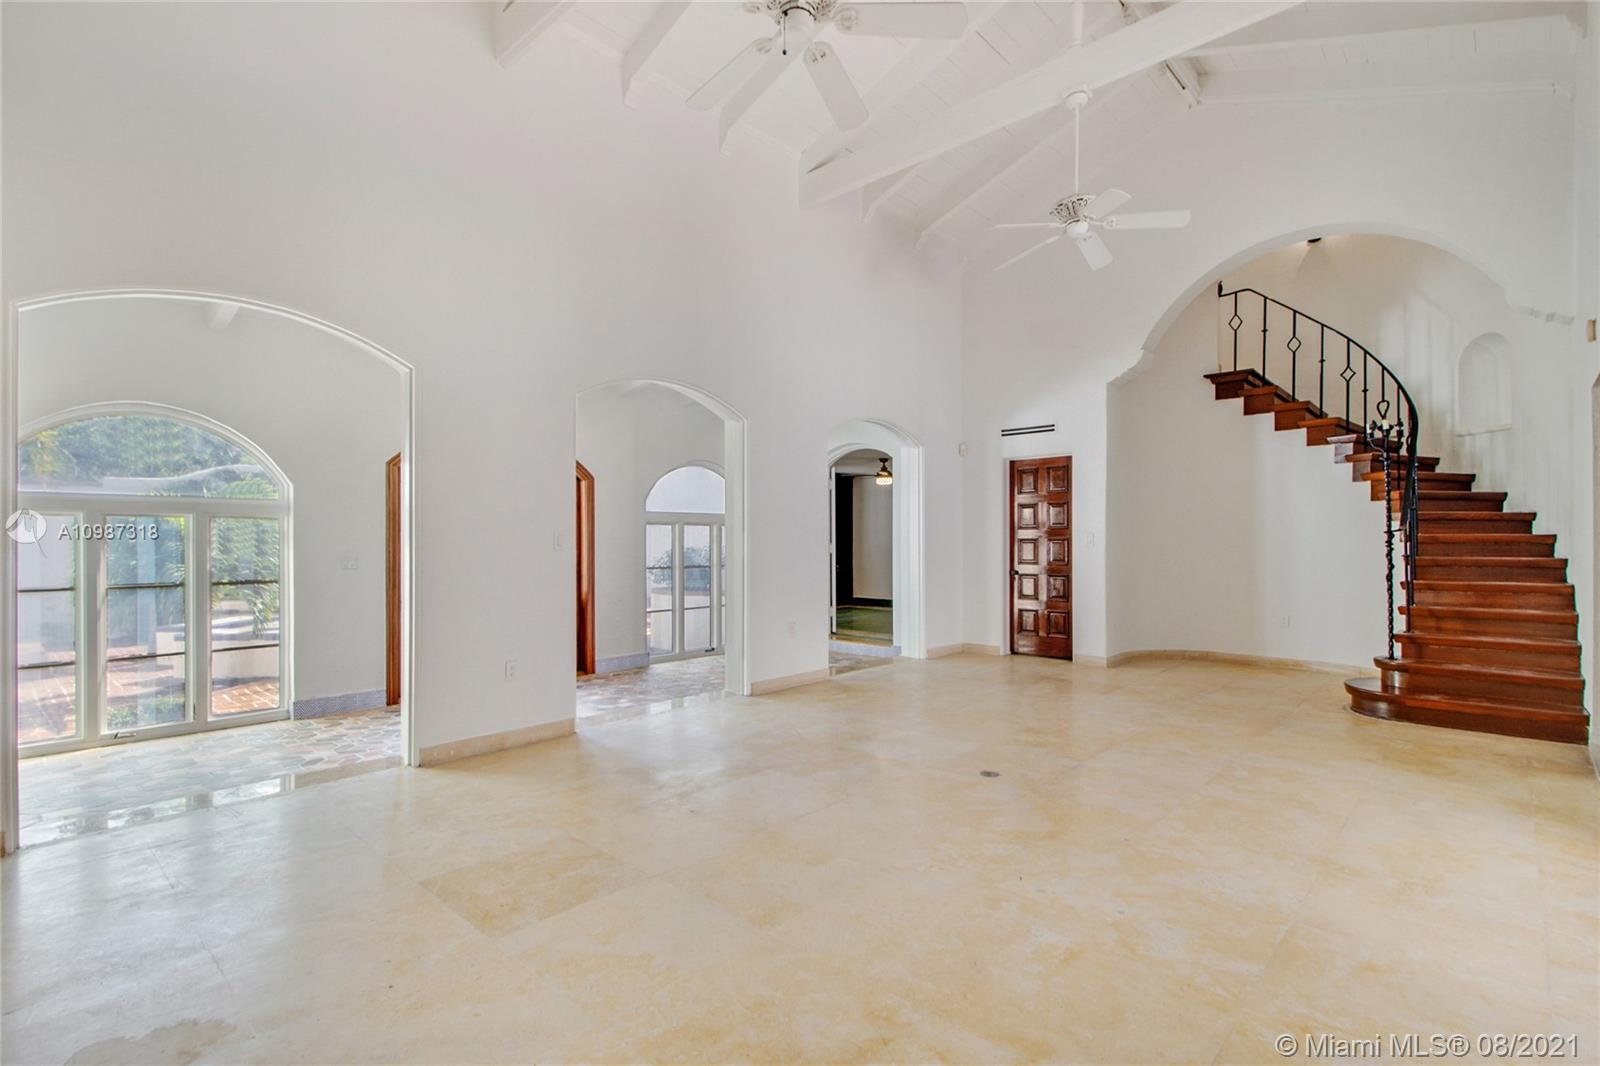 Beach View - 5660 Pine Tree Dr, Miami Beach, FL 33140